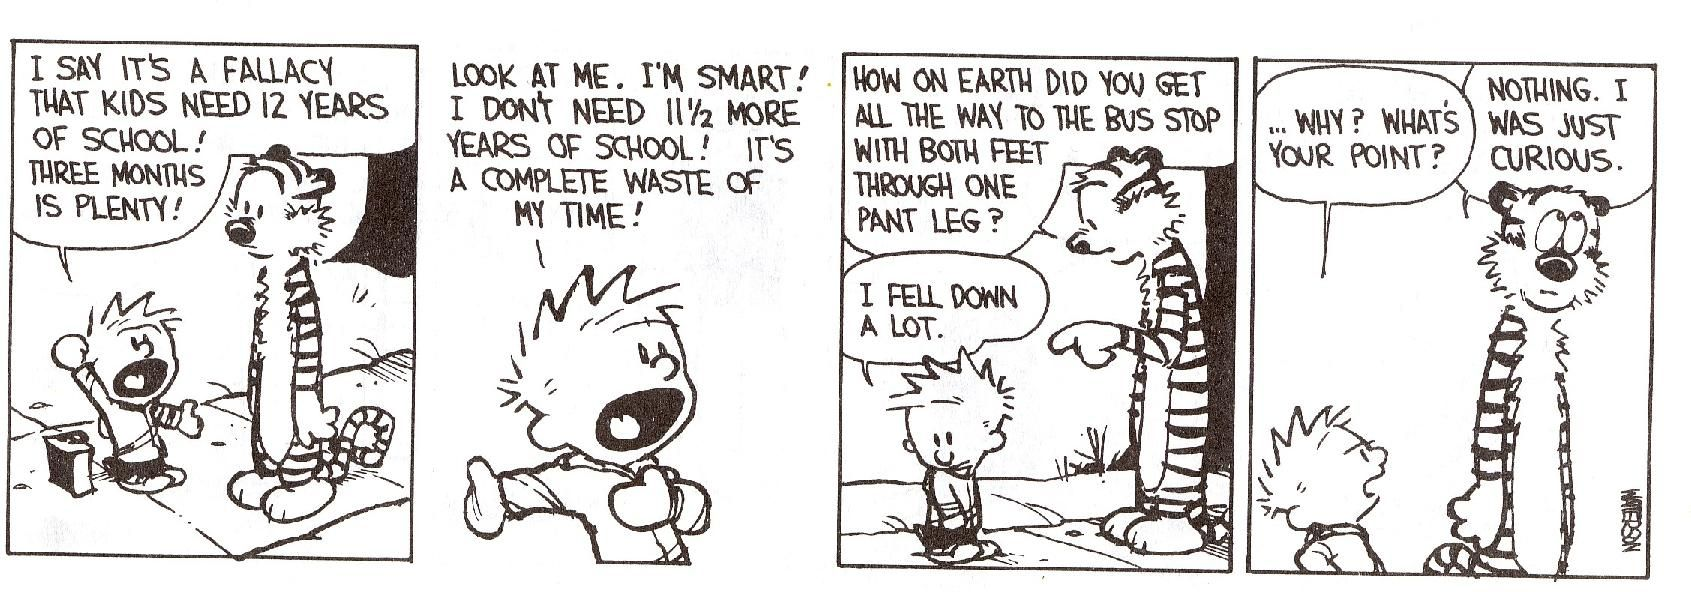 Calvin S Thoughts On School Calvin And Hobbes Comics Calvin And Hobbes Fun Comics